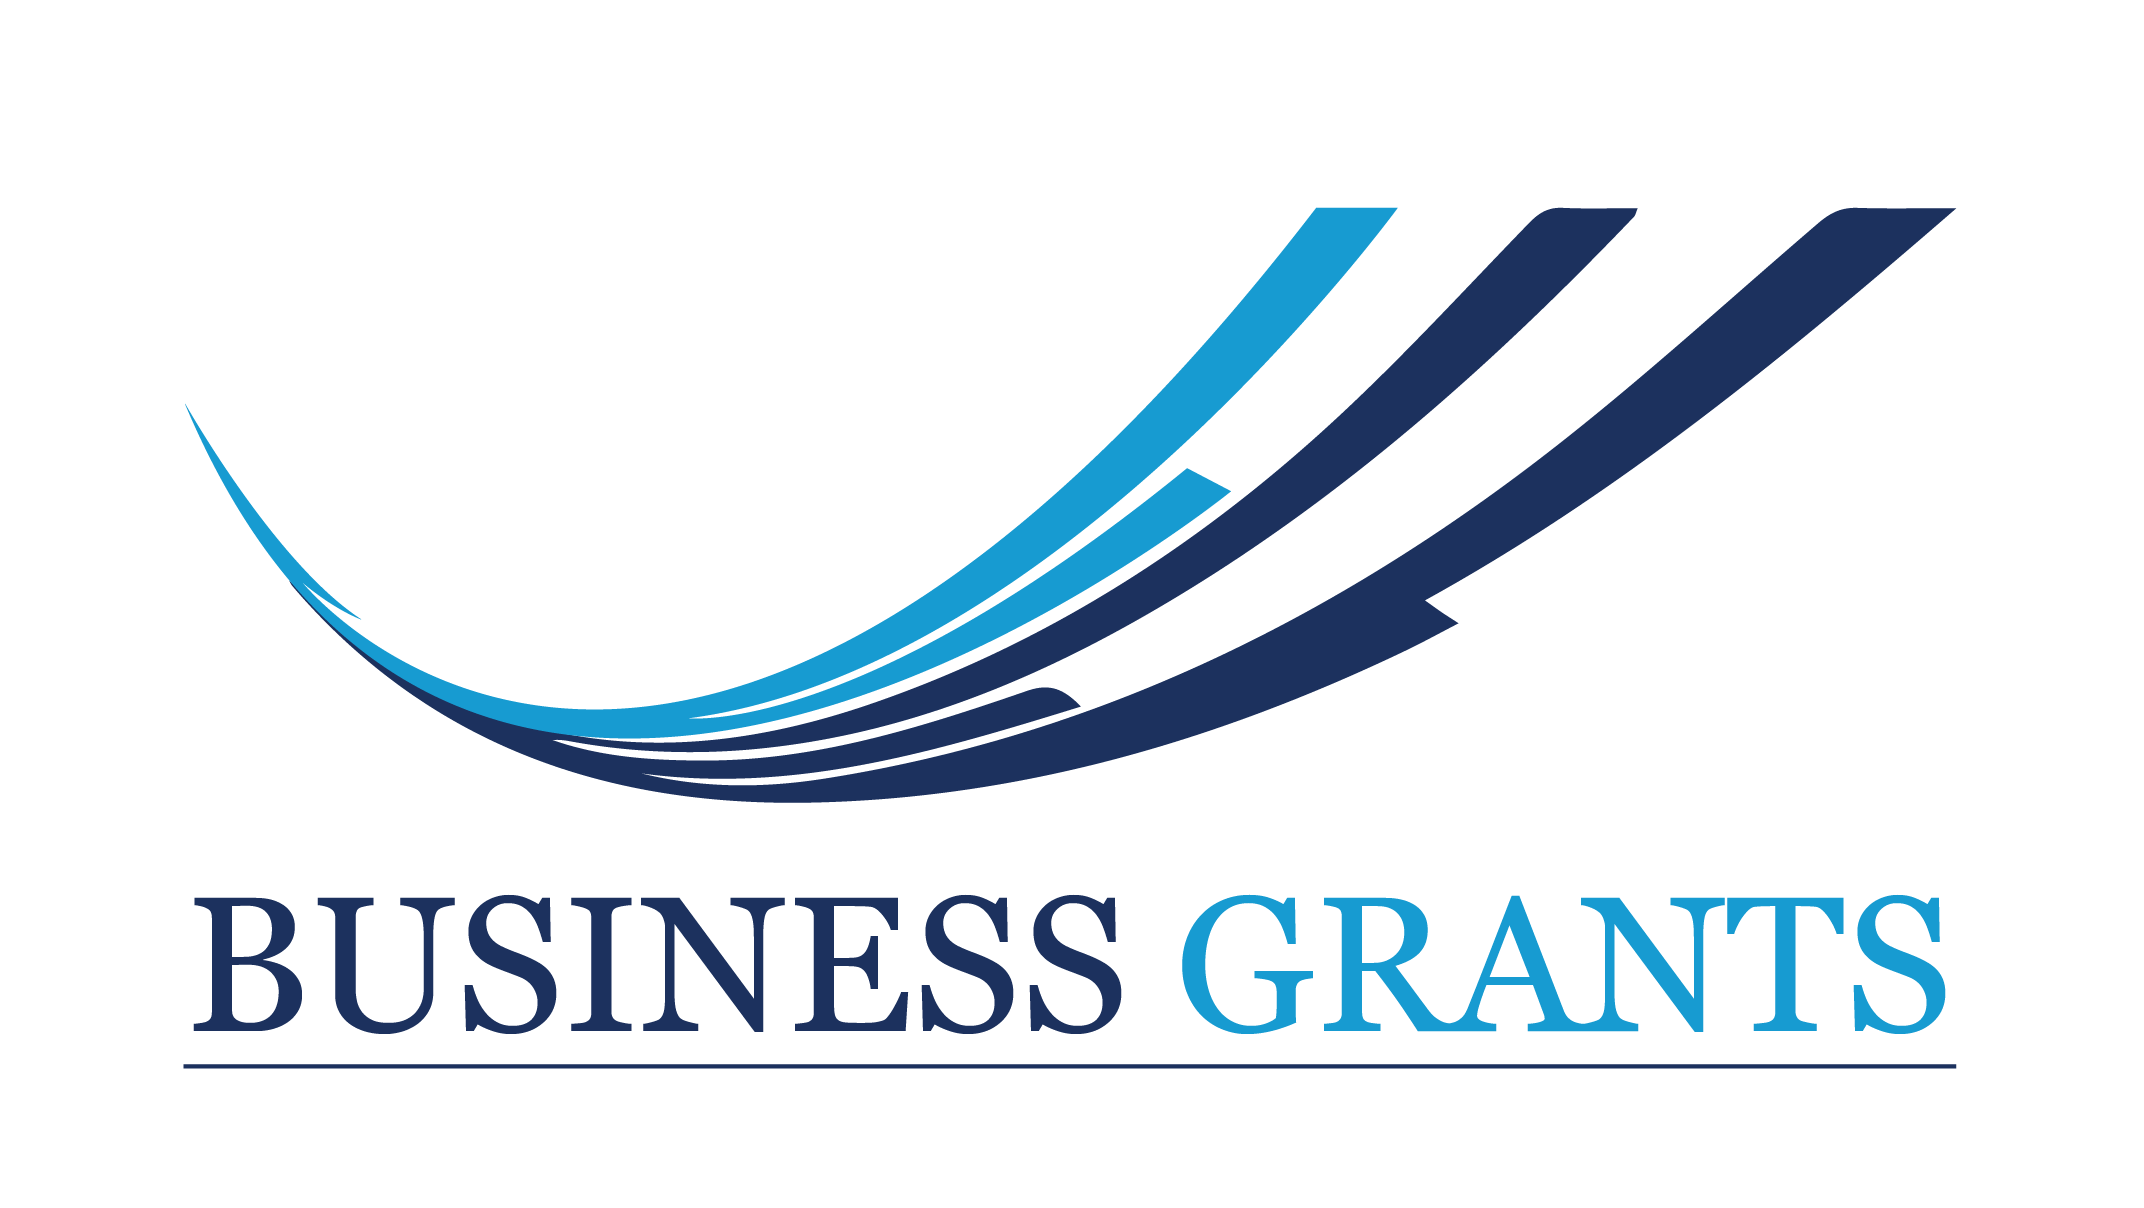 Business Grants-01